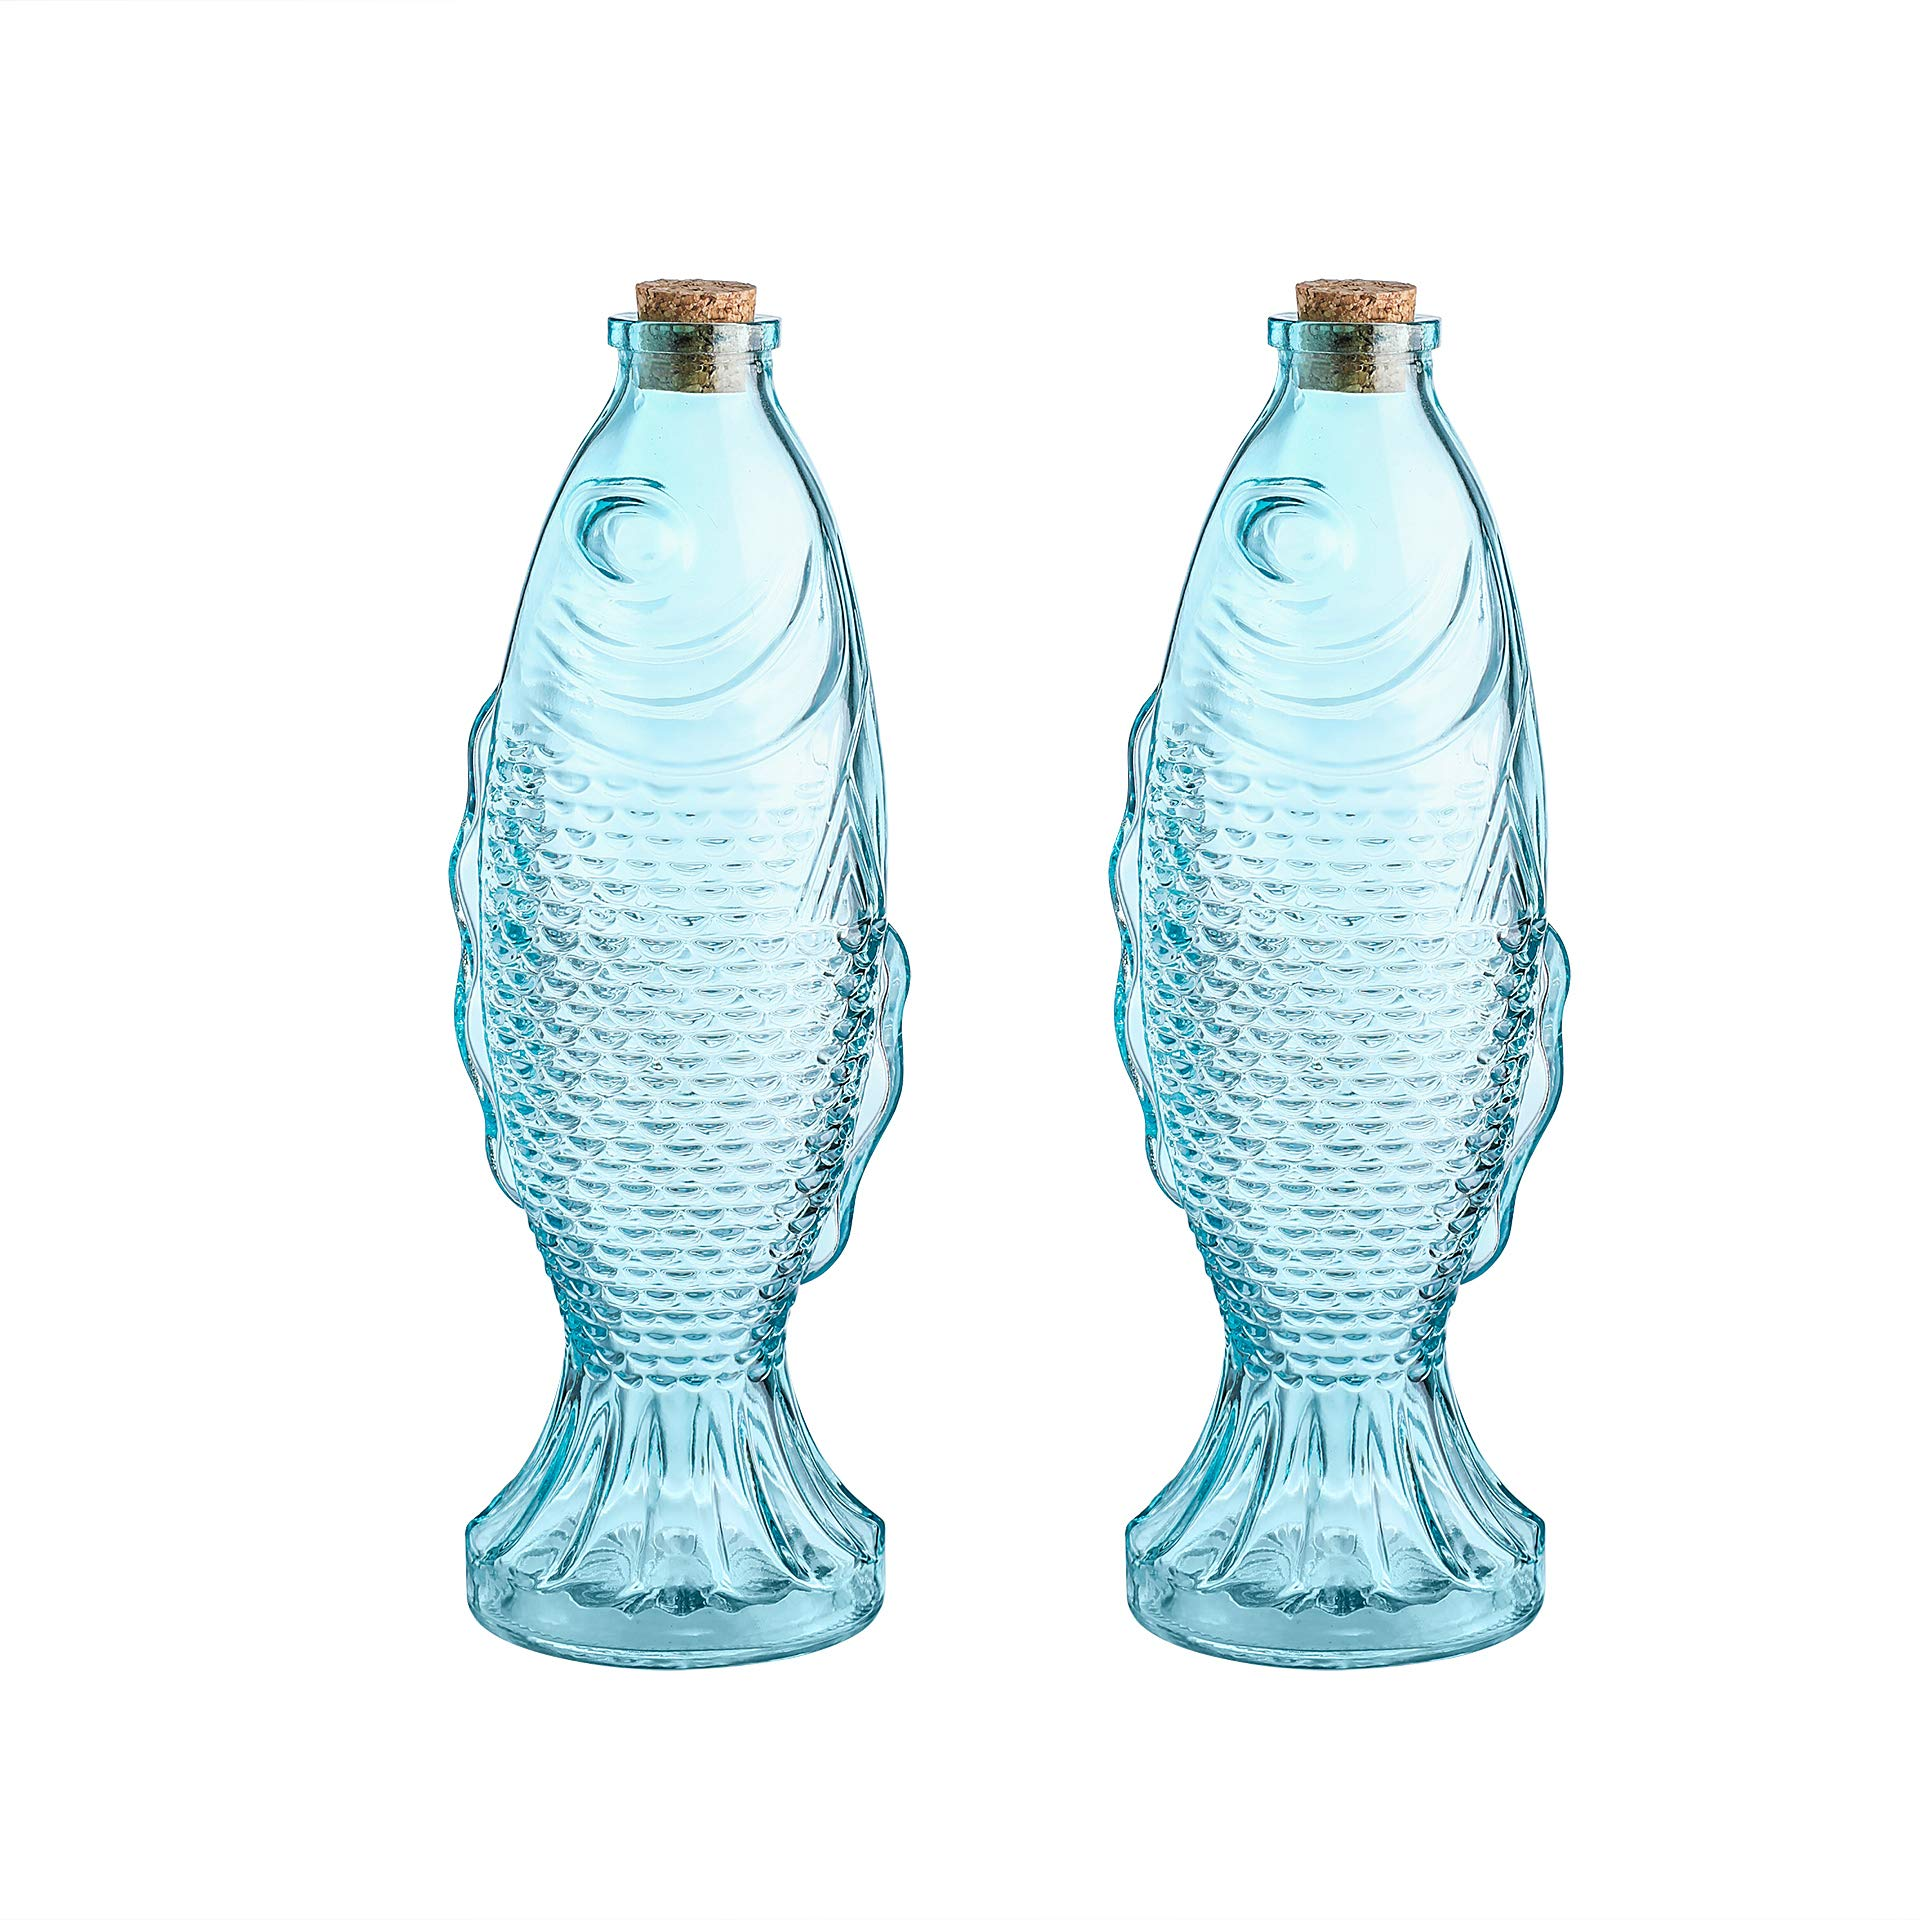 Whole Housewares 10.5'' H 18 Ounce Blue Glass Decorative Bottles, Fish Shaped Bottles with Cork Set of 2 by Whole Housewares